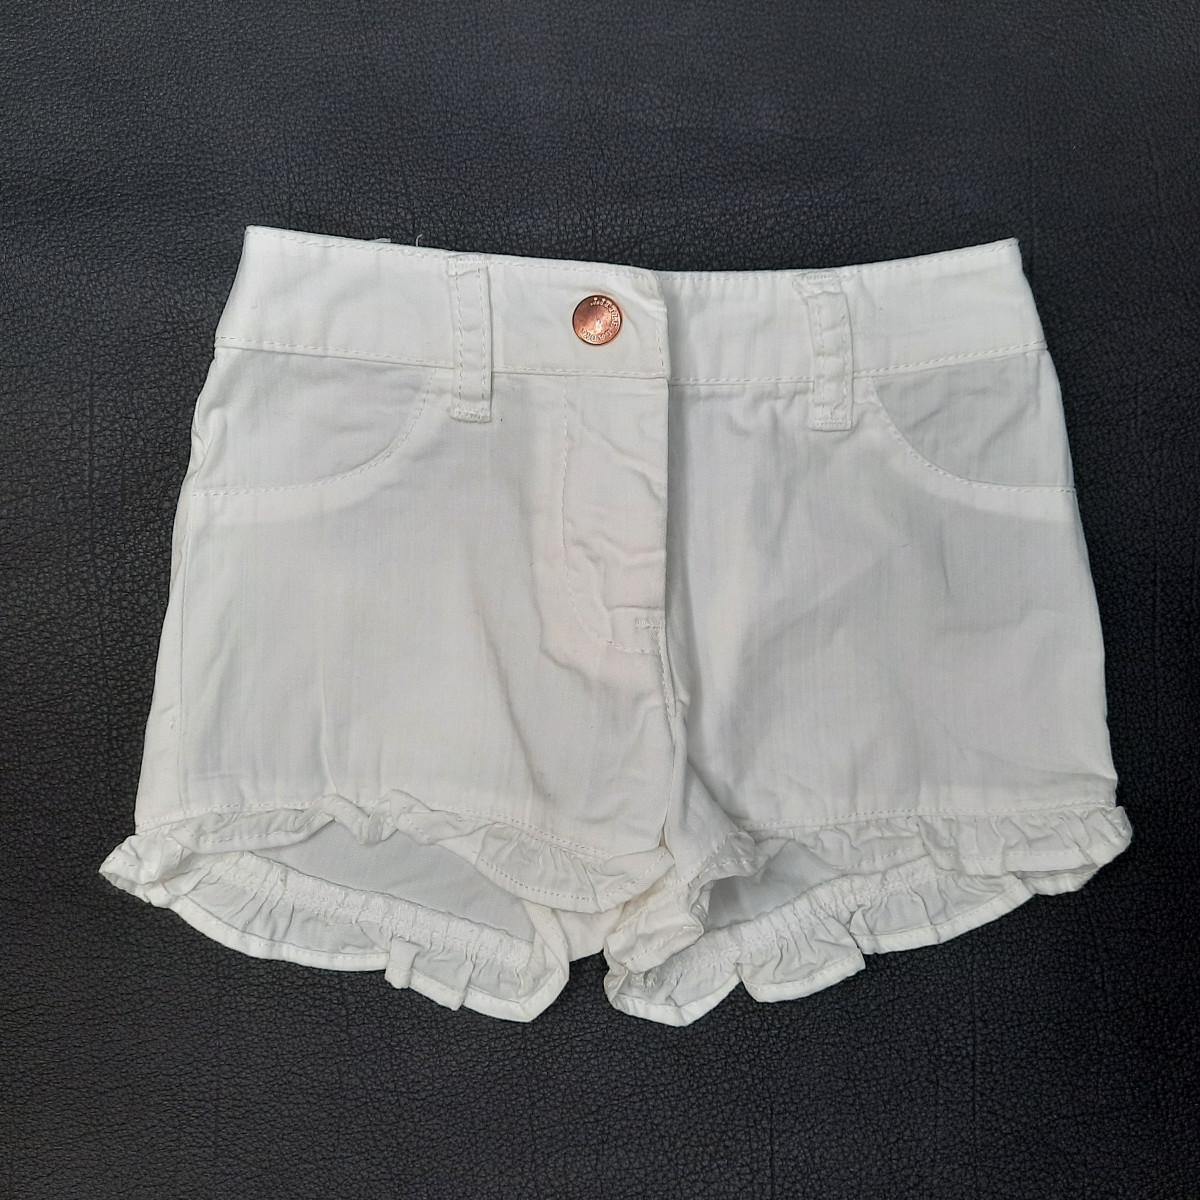 Shorts, Bermudas - photo 8